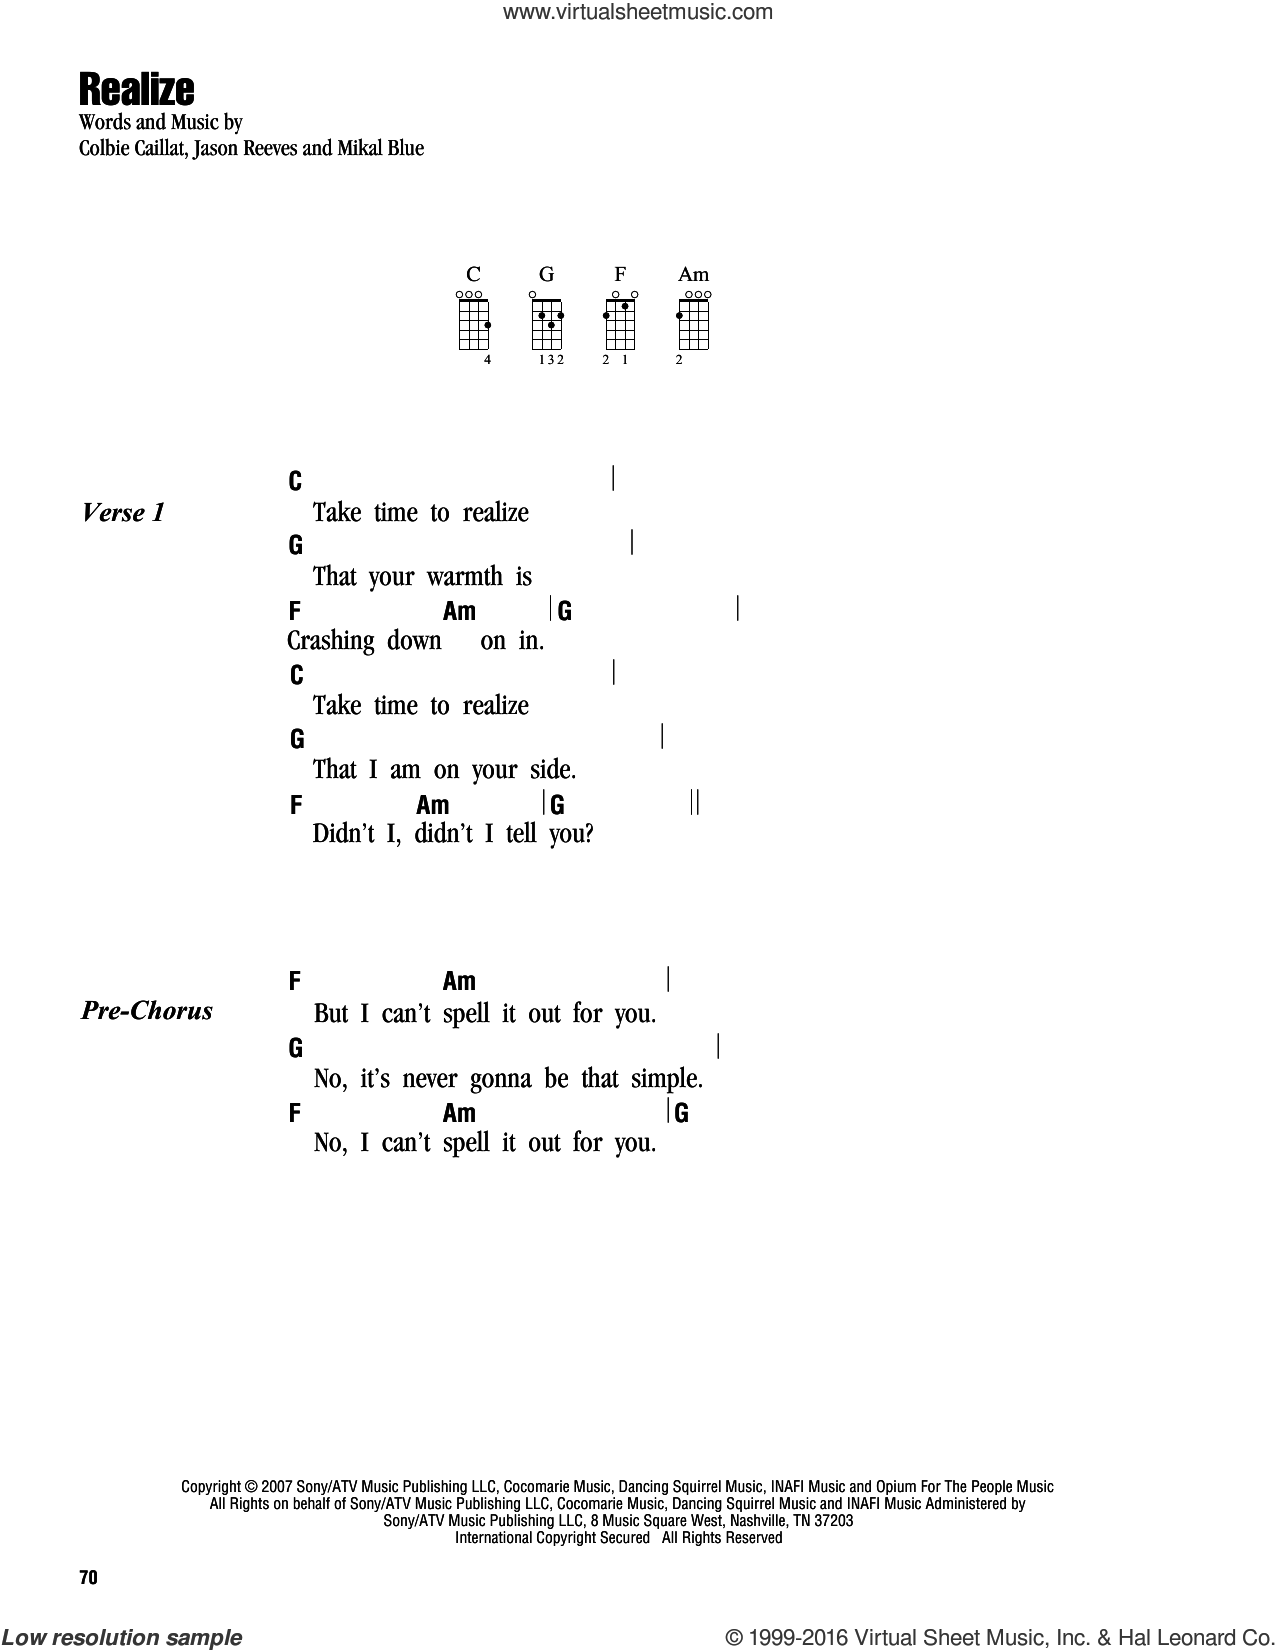 Realize sheet music for ukulele (chords) by Colbie Caillat, Jason Reeves and Mikal Blue, intermediate skill level